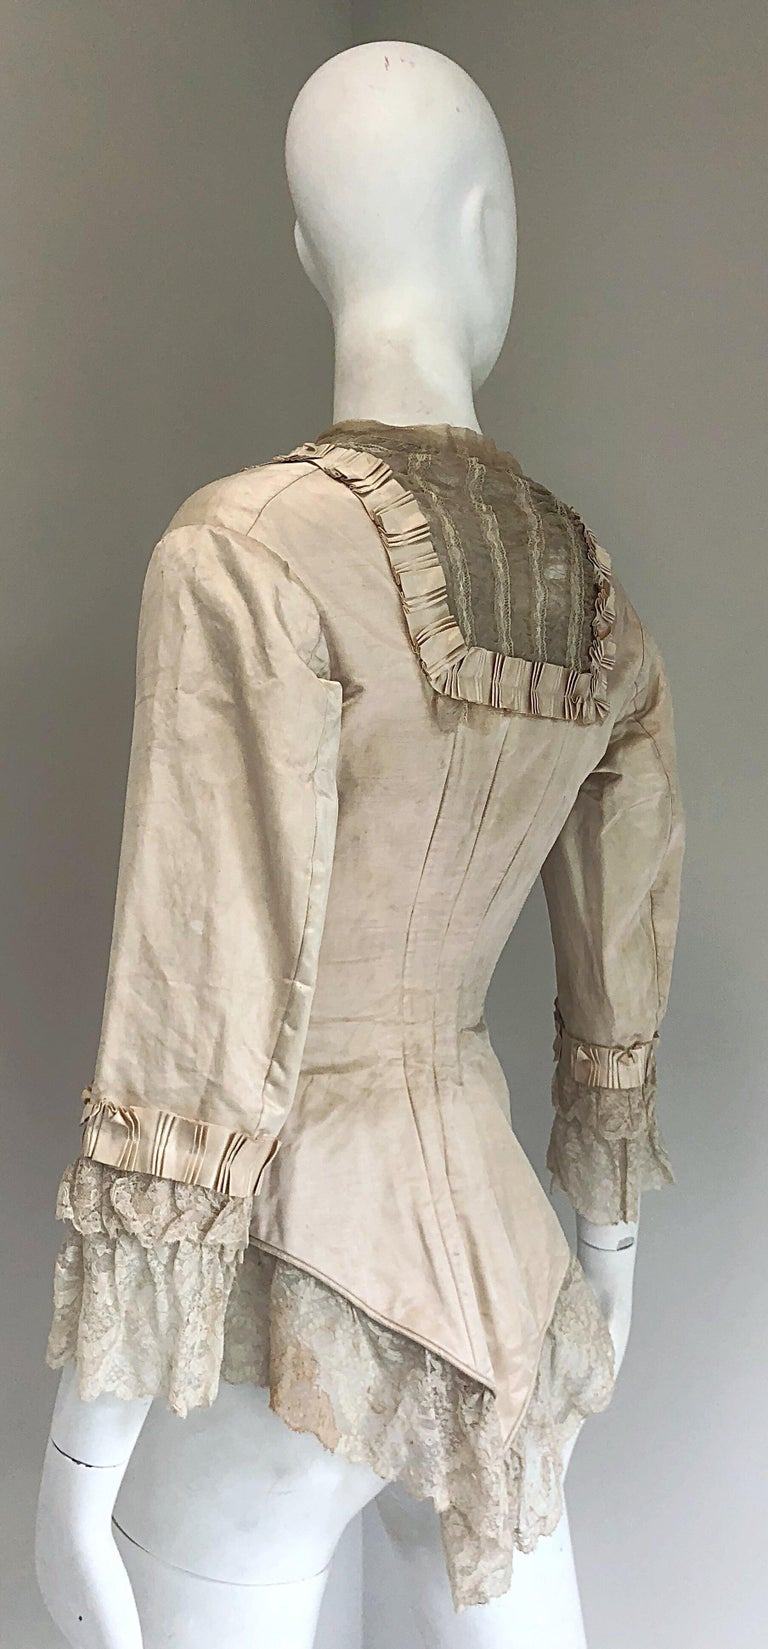 Incredible Authentic Victorian 1880s Ivory Silk Lace Corset 1800s Couture Blouse For Sale 10